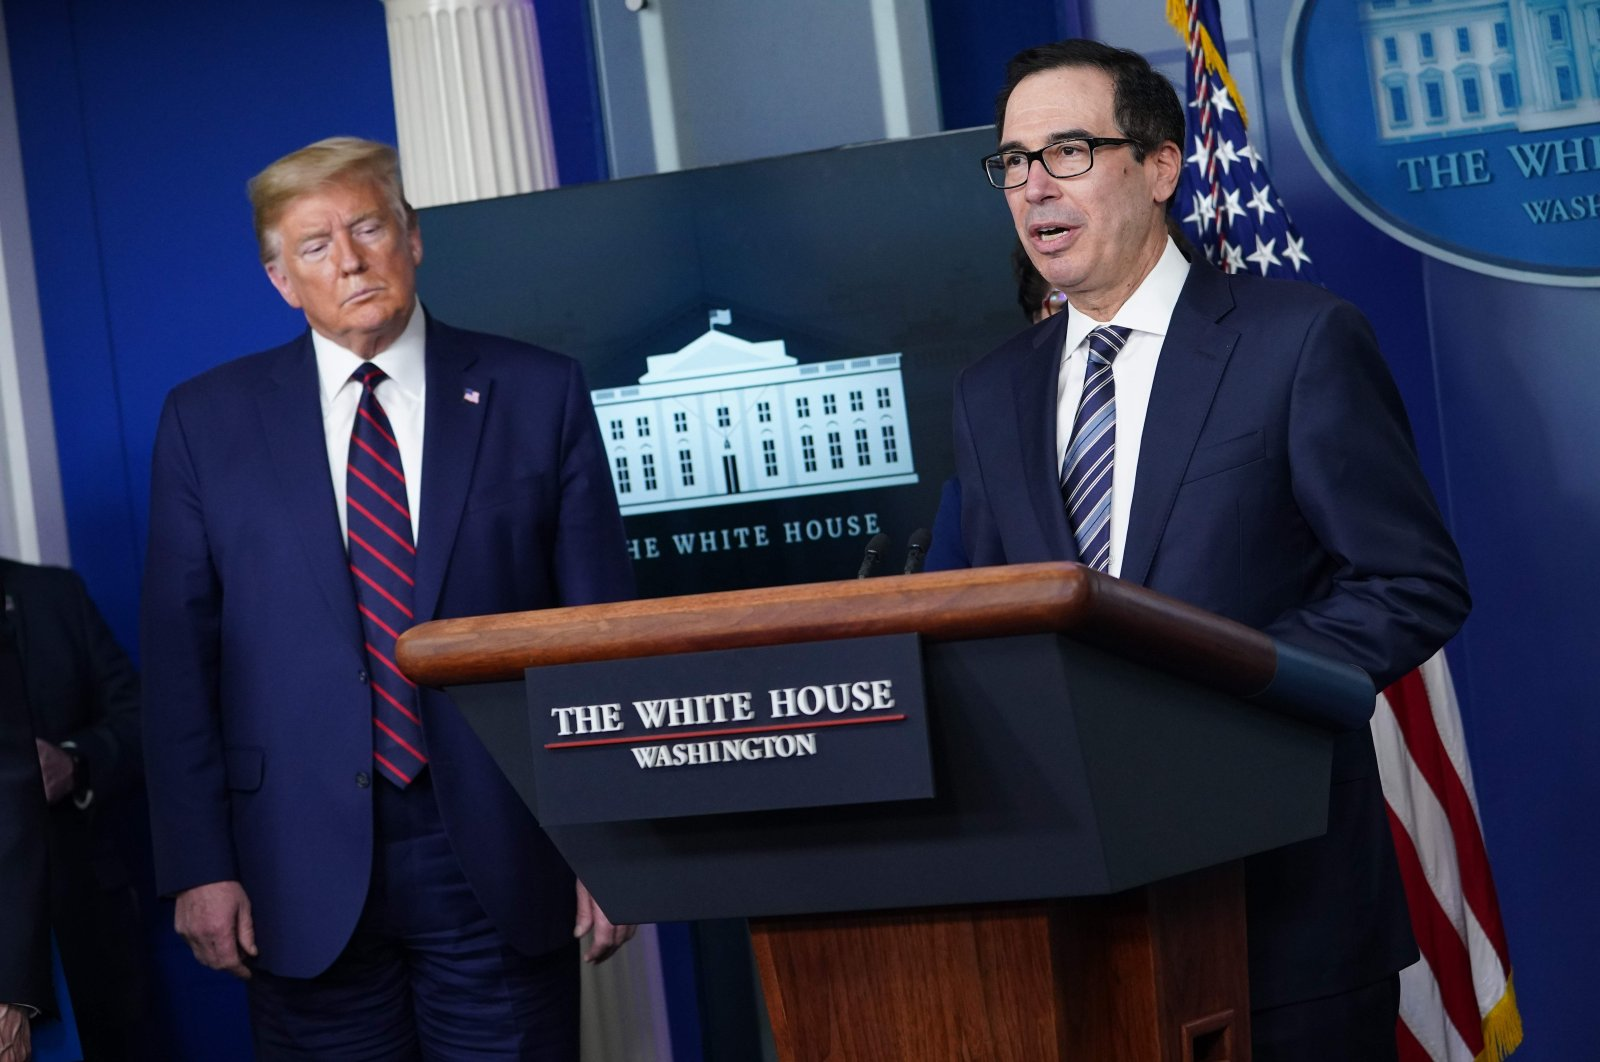 U.S. Secretary of the Treasury Steven Mnuchin speaks while U.S. President Donald Trump listens during the daily briefing on the novel coronavirus in the Brady Briefing Room at the White House, Washington, D.C., Thursday, April 2, 2020. (AFP Photo)